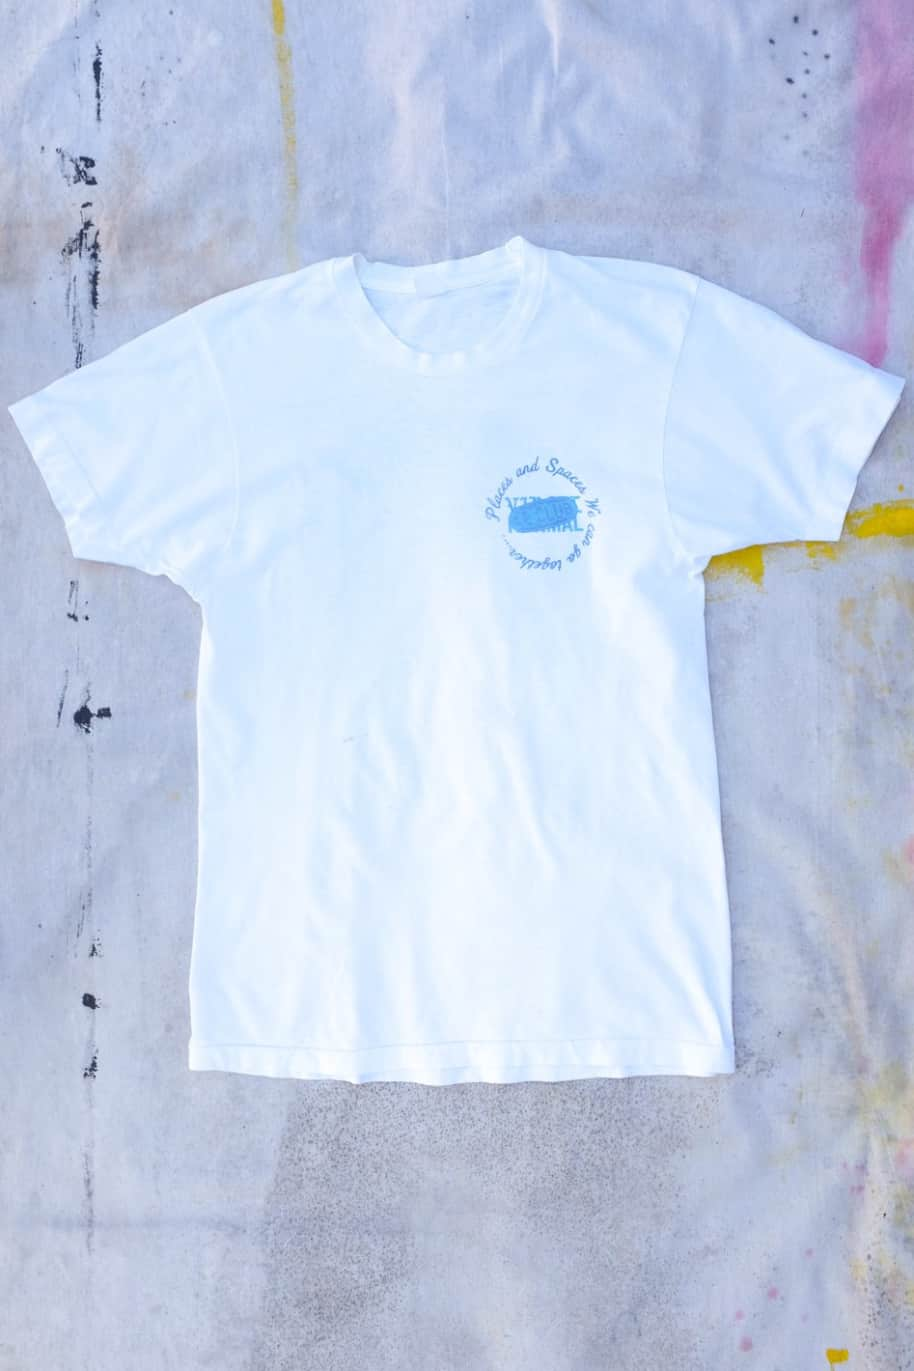 Donald Byrd Short Sleeve Vintage Tee Shirt | T-Shirt by Virgil Normal 2